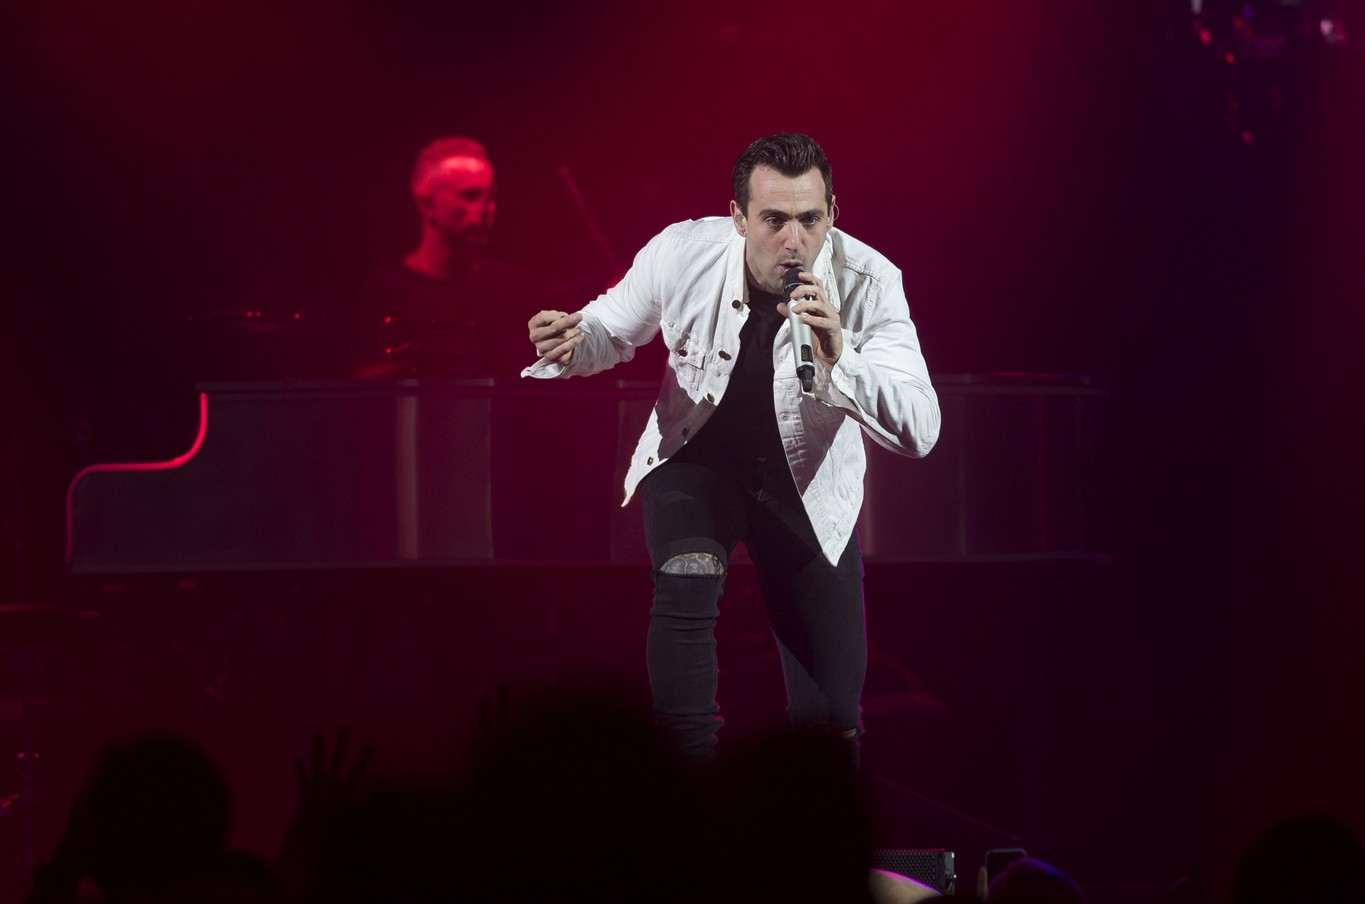 Show will go on in Kitchener for embattled pop rockers Hedley